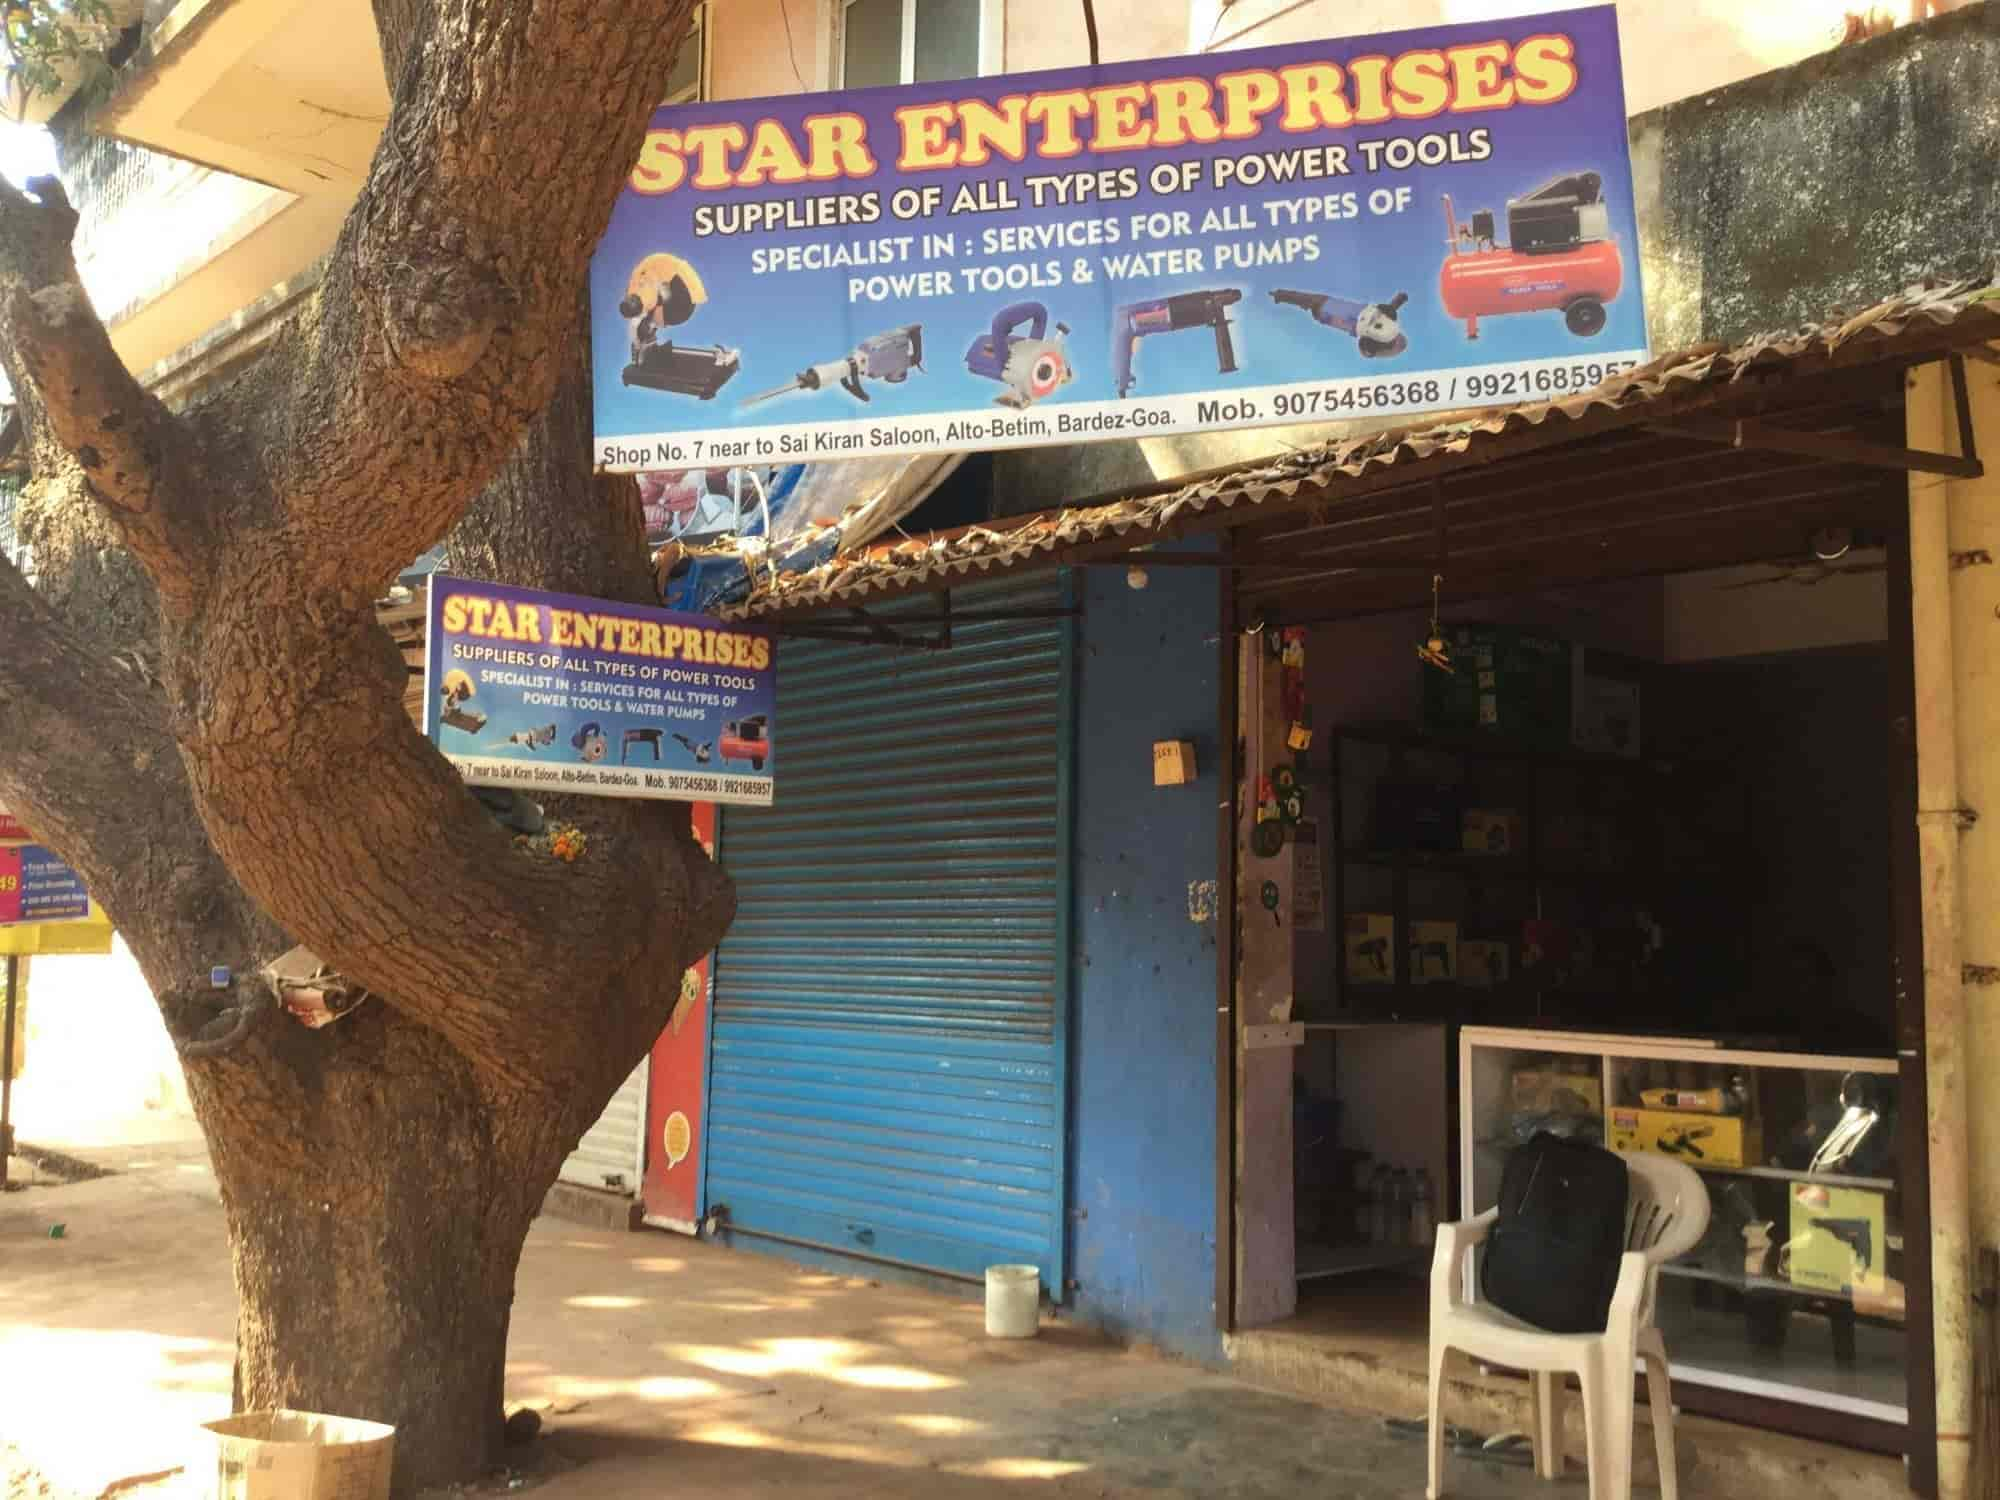 Star Enterprises, Alto Betim - Power Tool Dealers in Goa